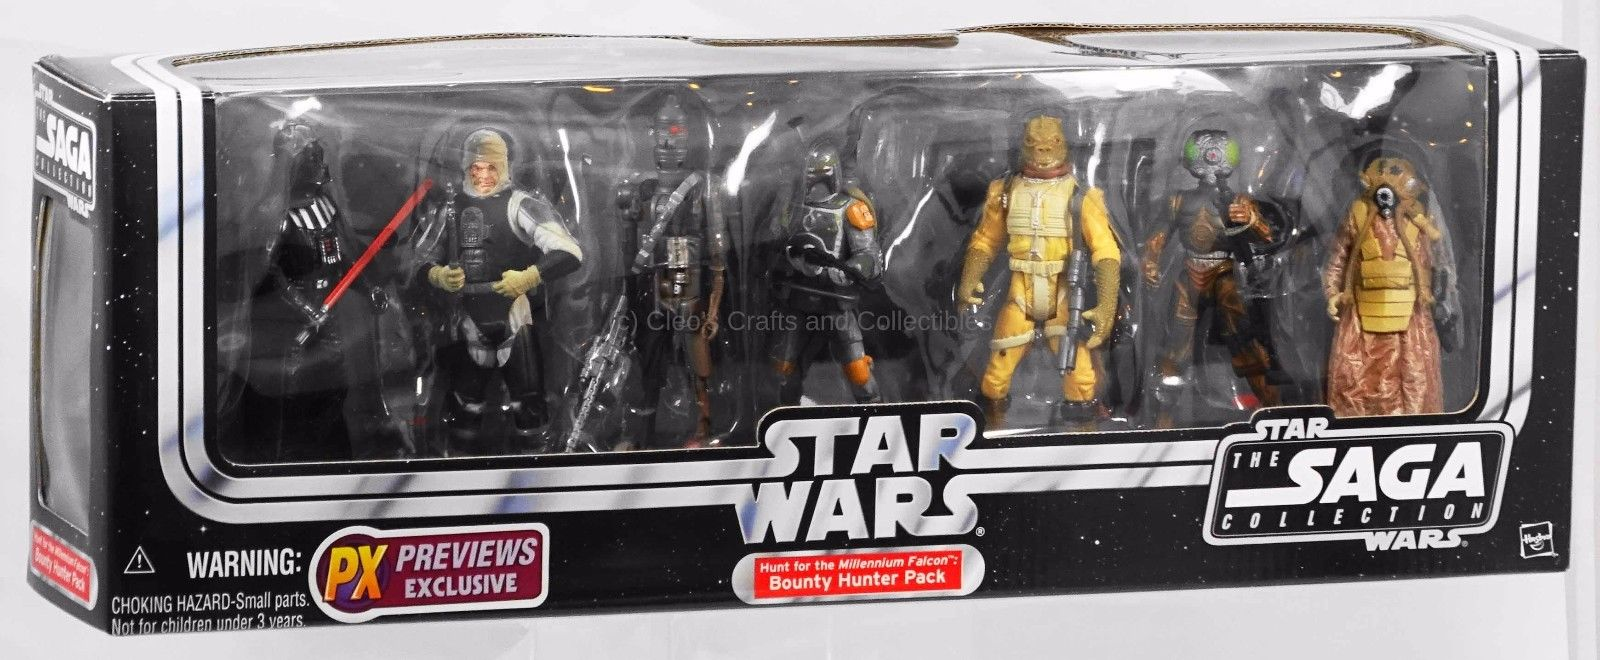 Hunt For Millennium Falcon Star Wars Bounty Hunter 7-Pack PX Previews Exclusive!